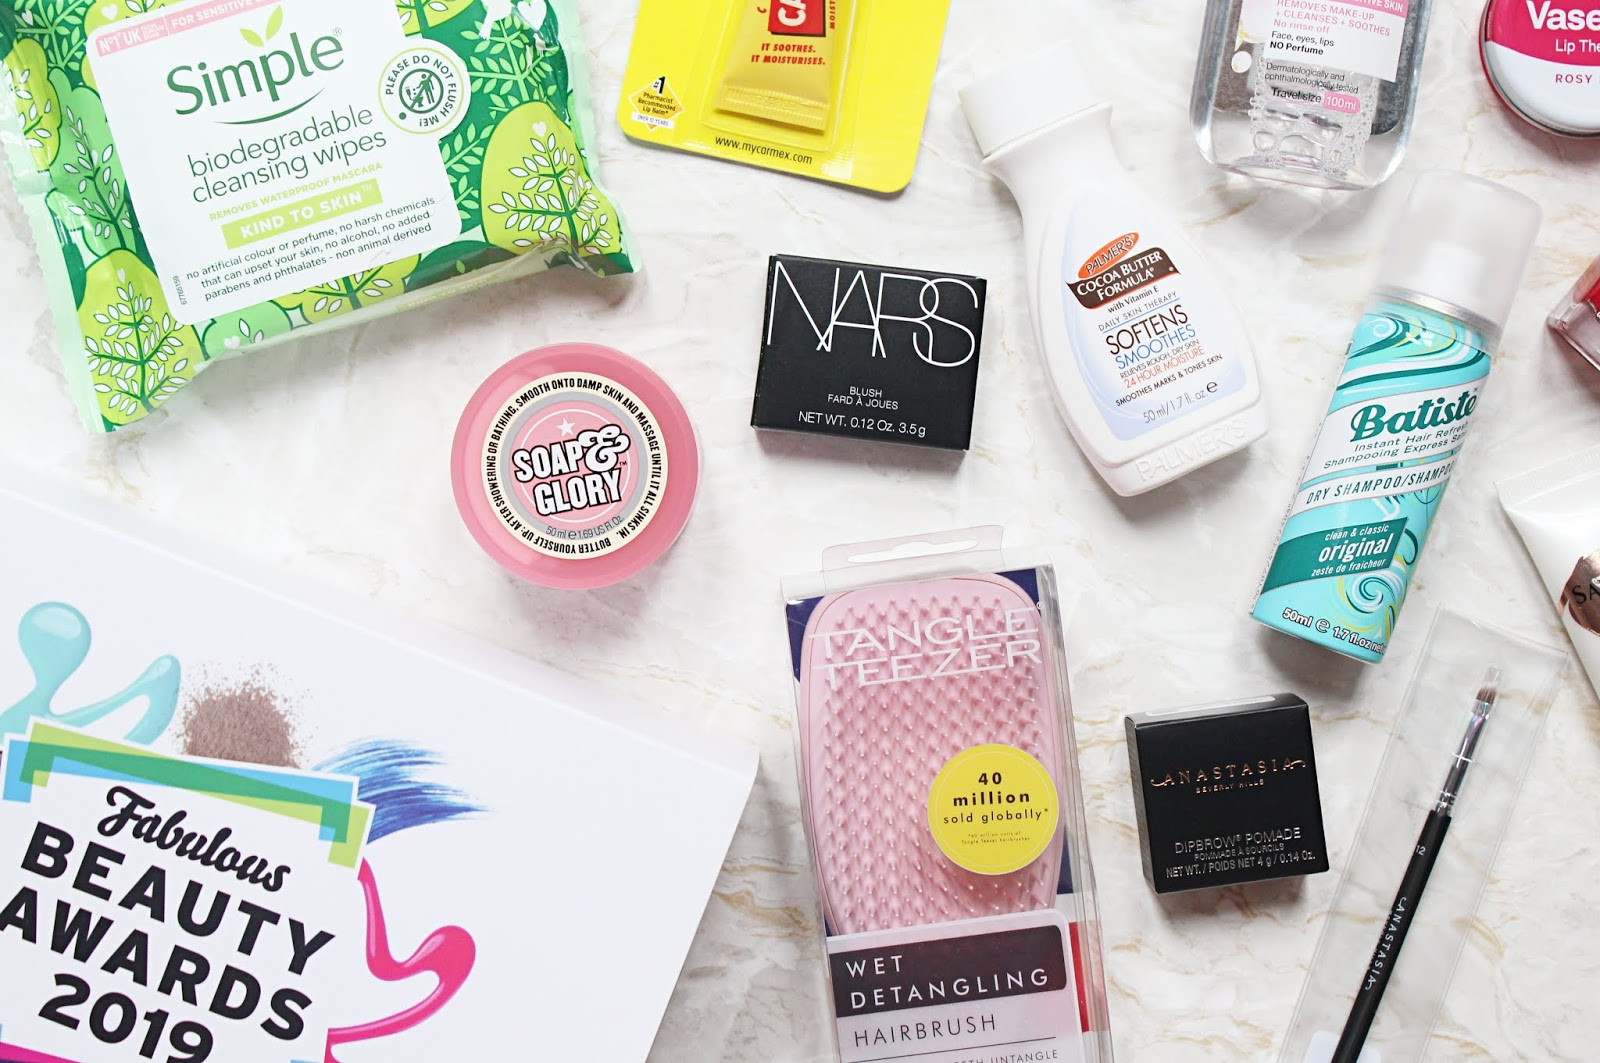 Latest in Beauty Fabulous Beauty Awards 2019 Box